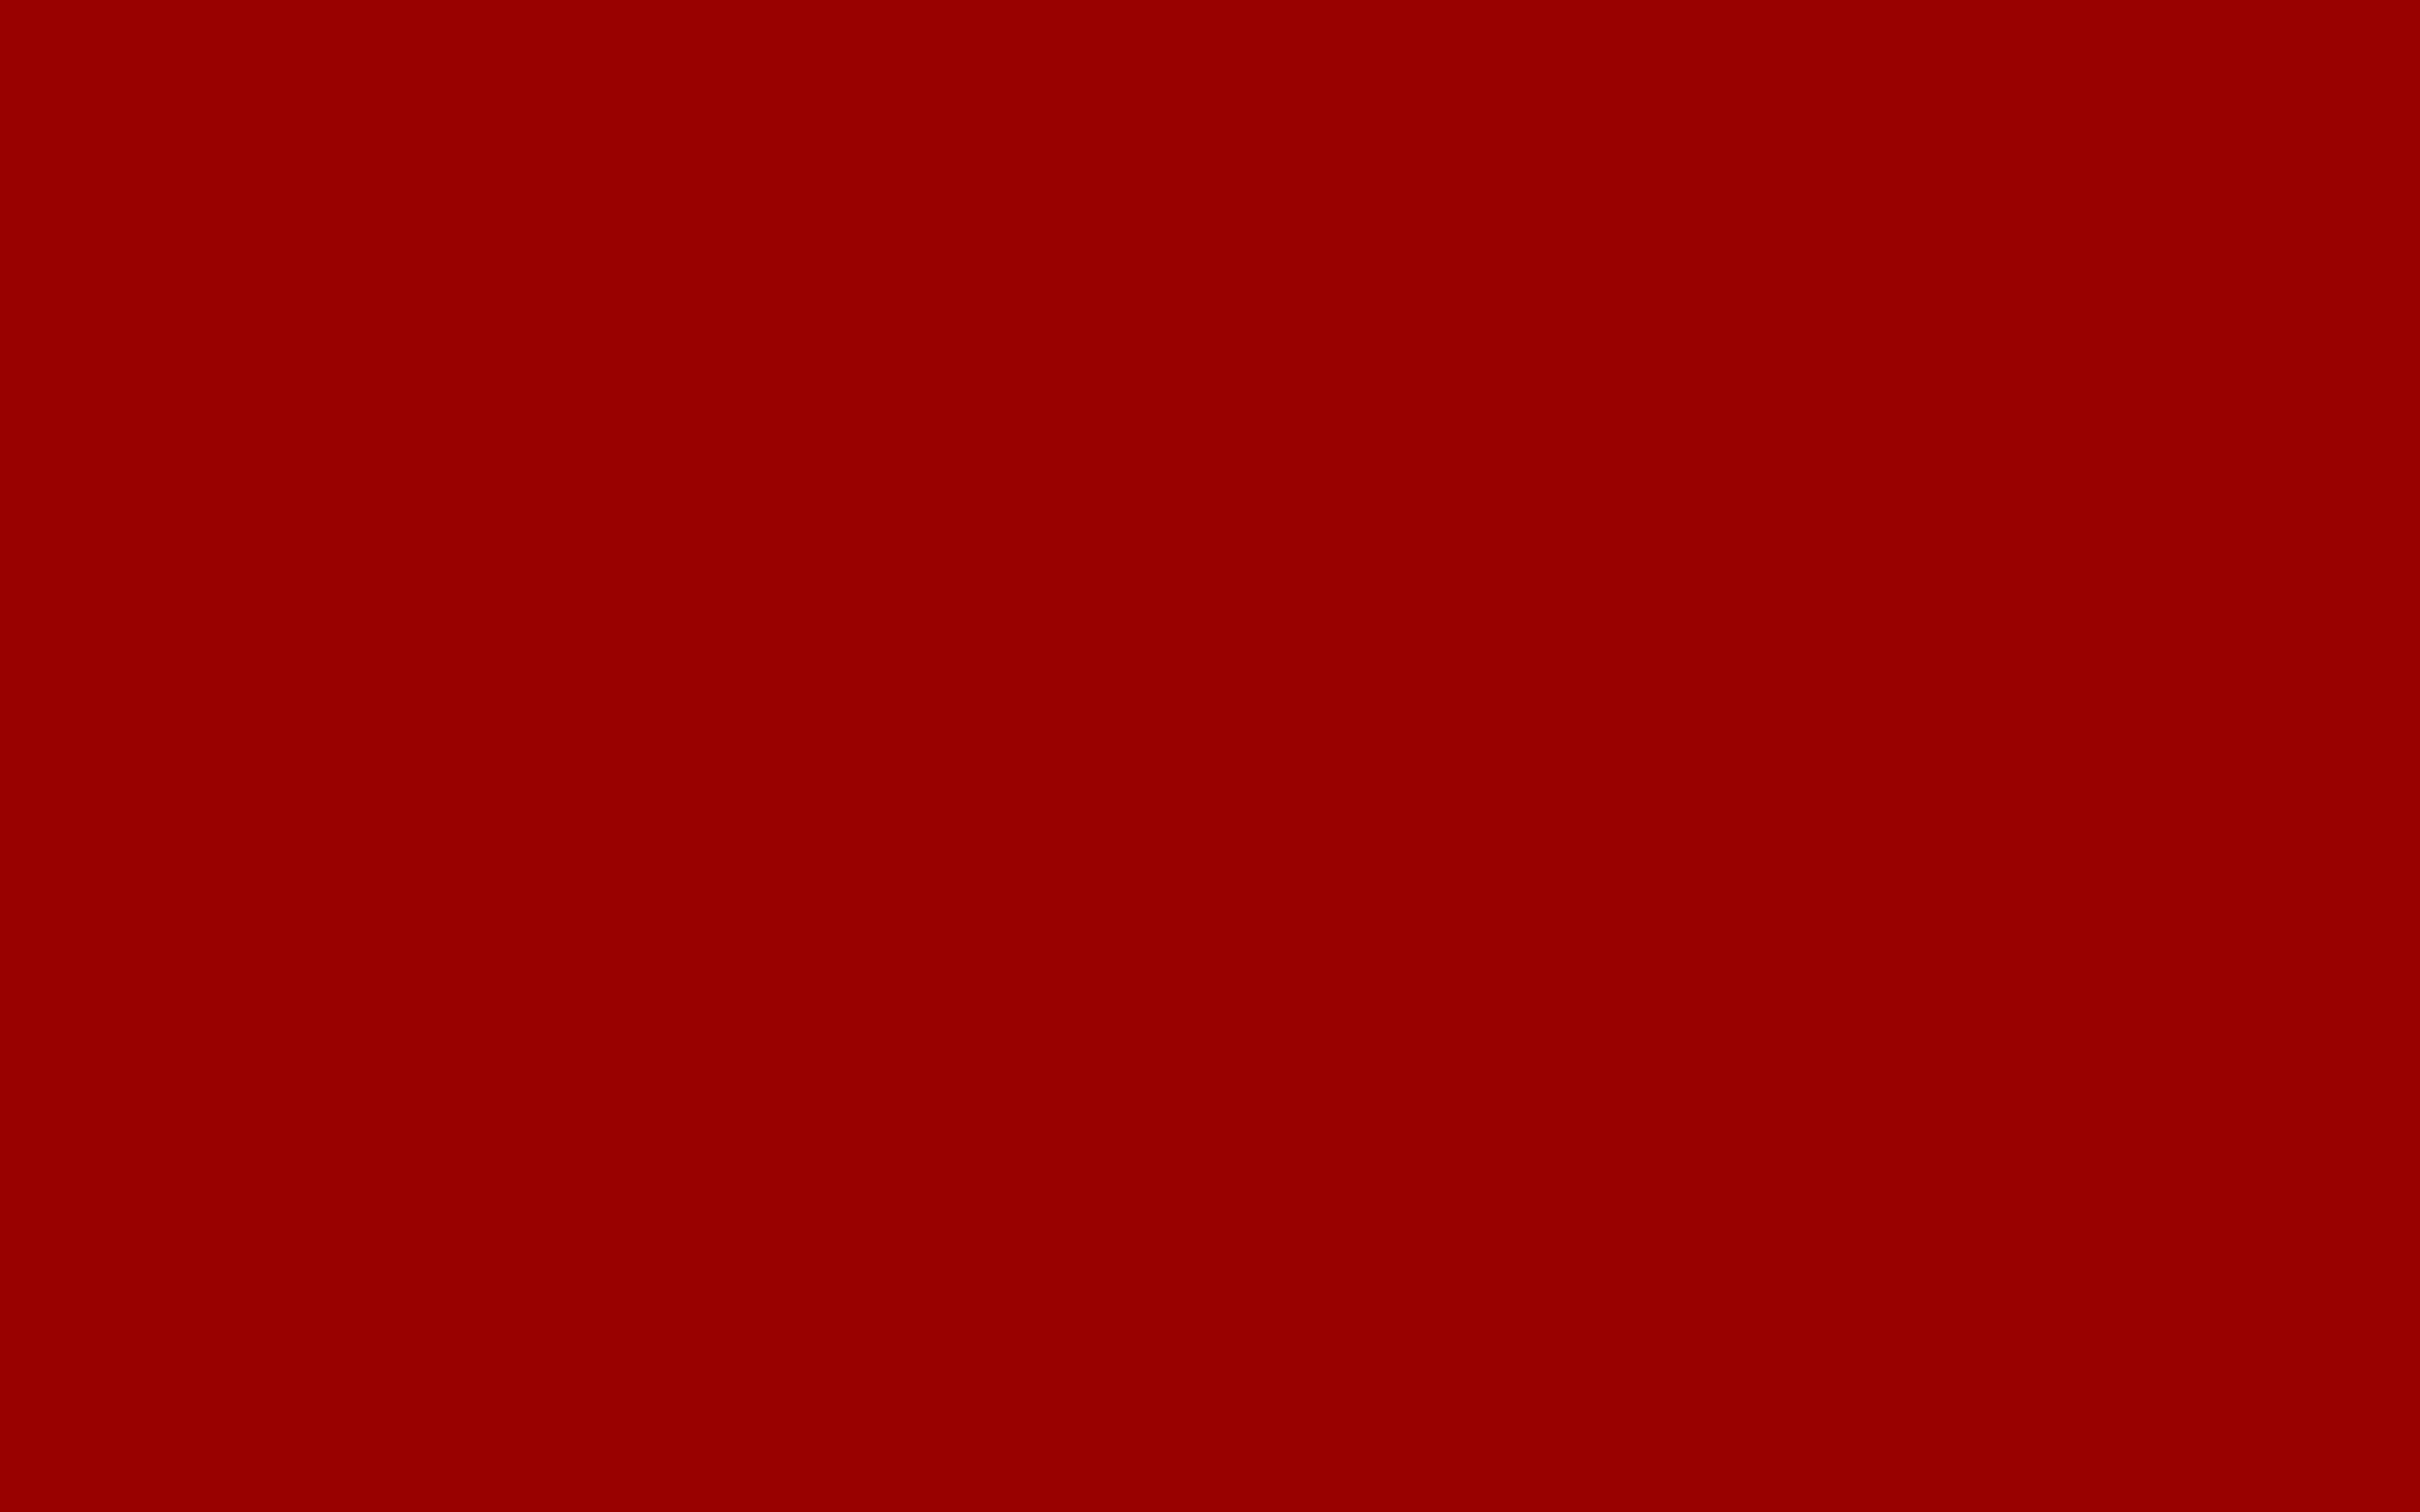 2560x1600 USC Cardinal Solid Color Background